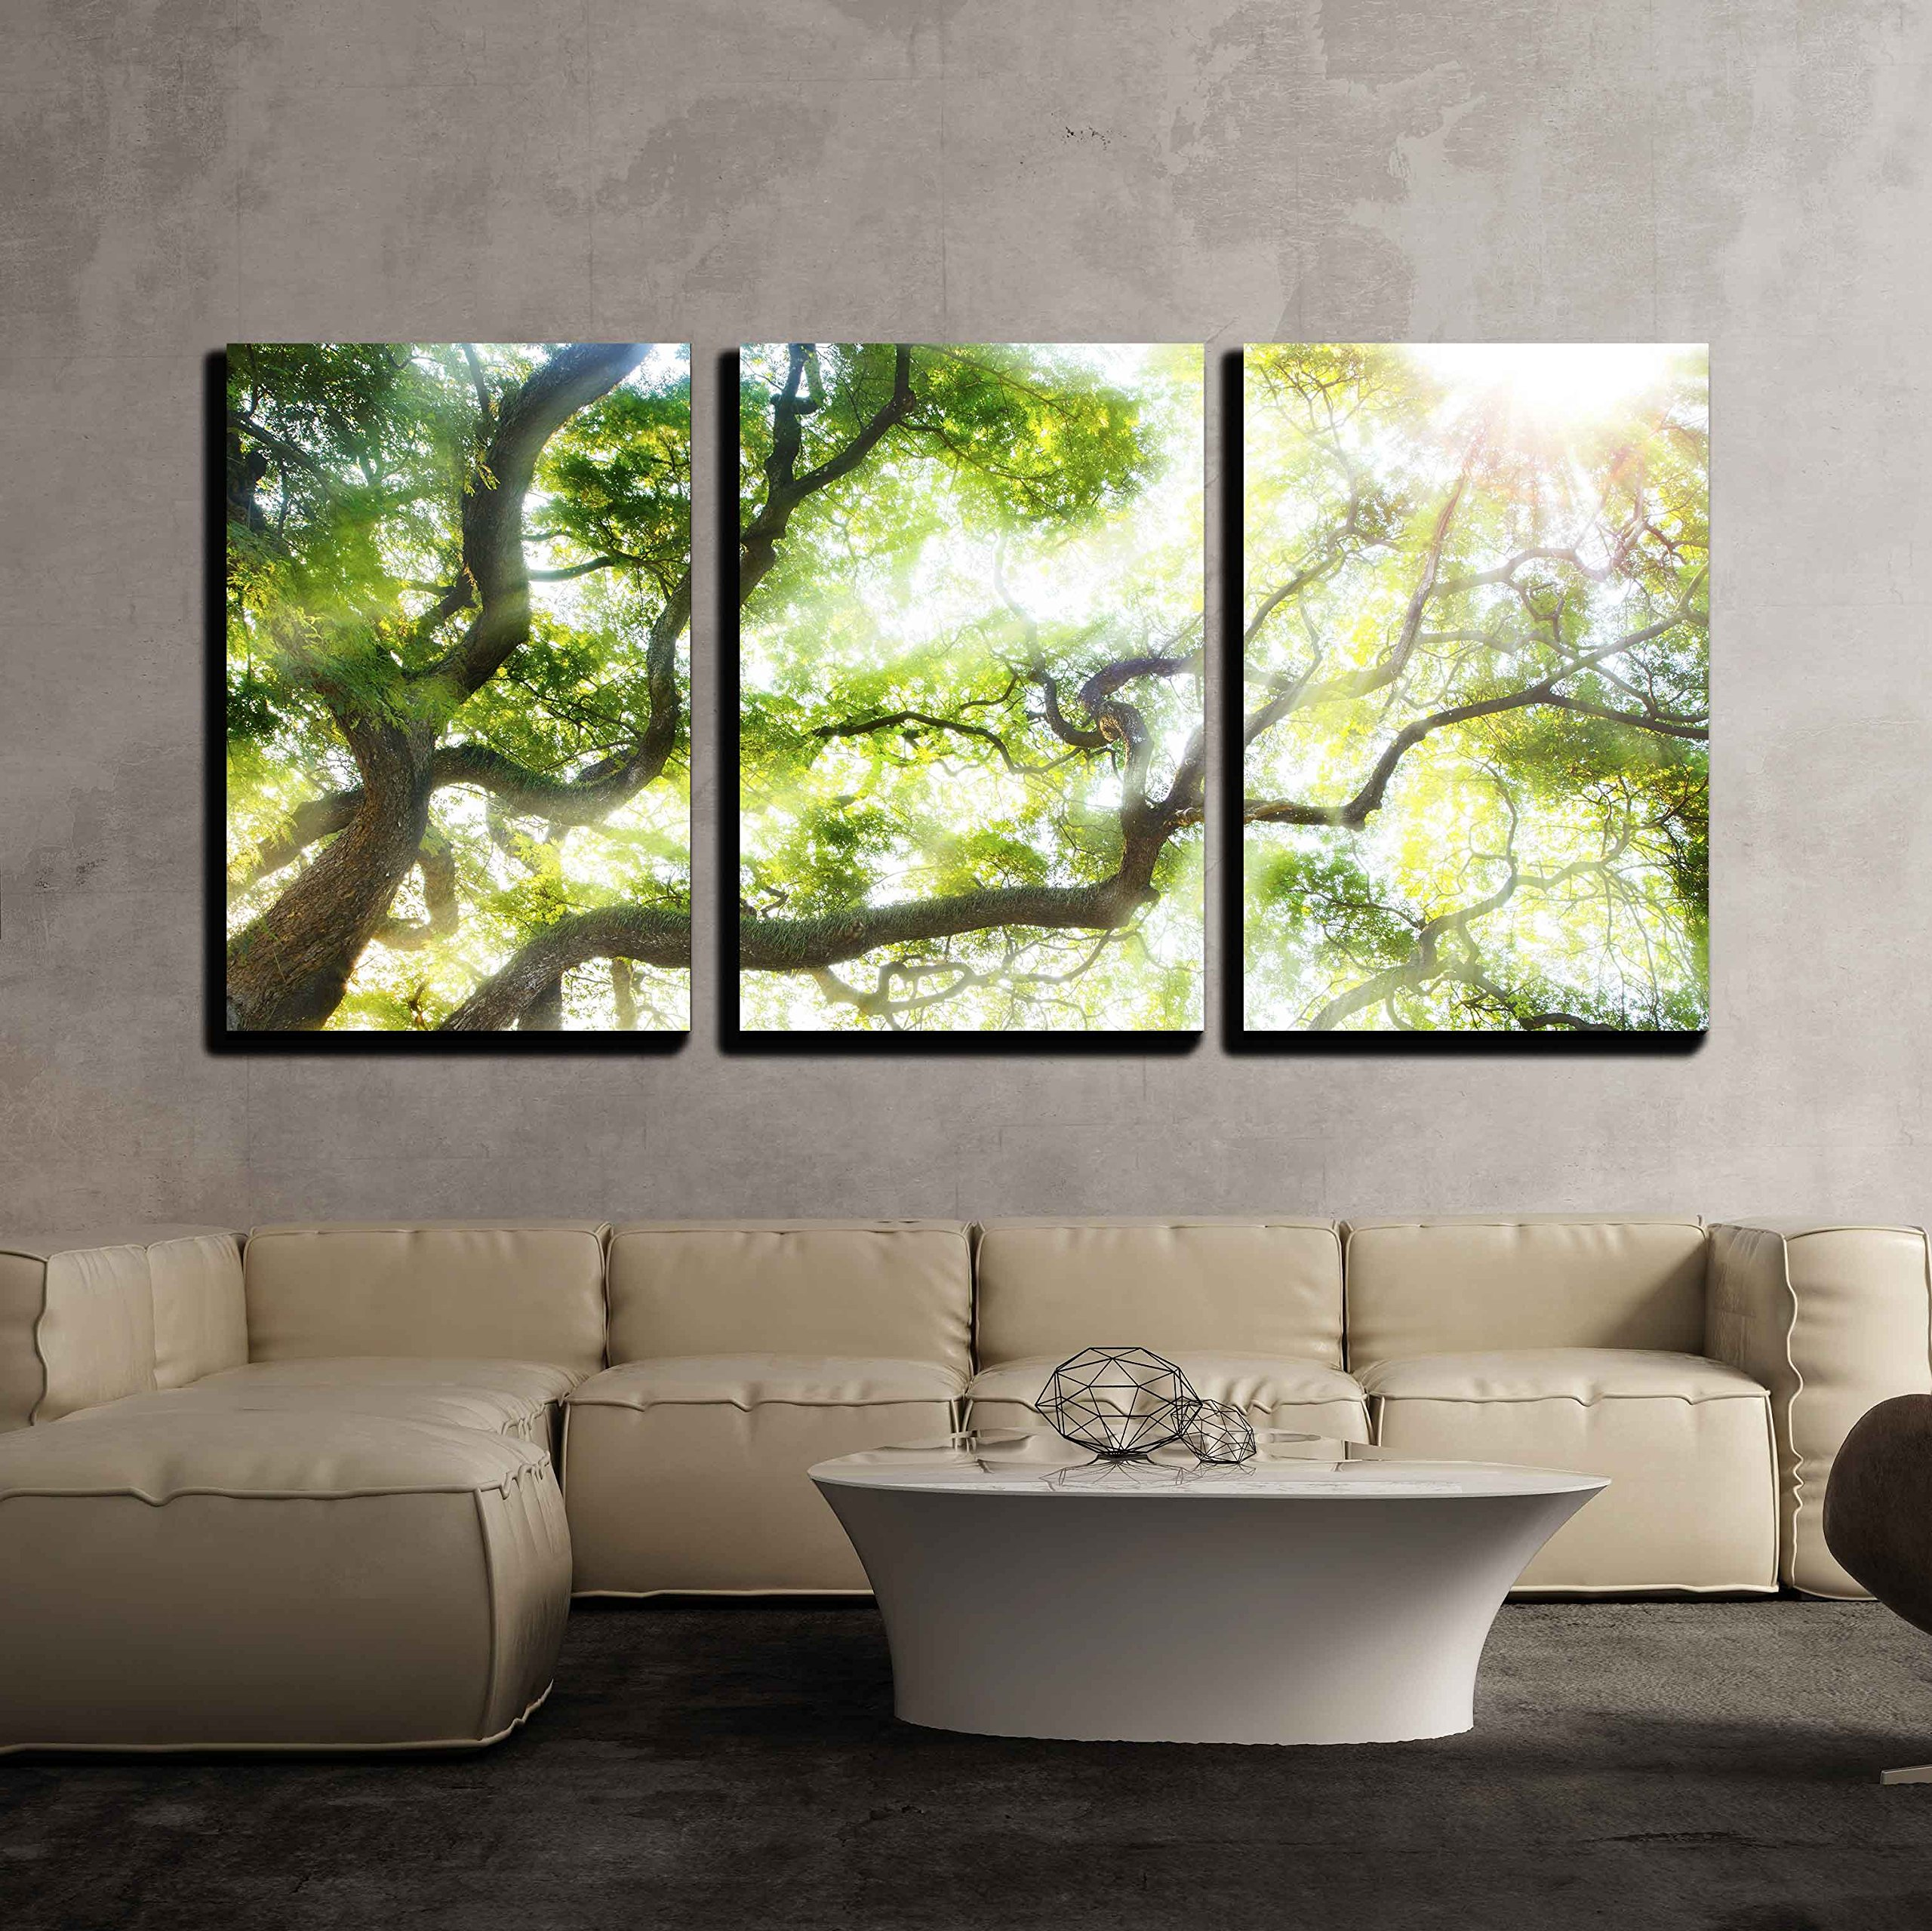 wall26 - 3 Piece Canvas Wall Art - Big Tree with Sun Light - Modern Home Decor Stretched and Framed Ready to Hang - 16''x24''x3 Panels